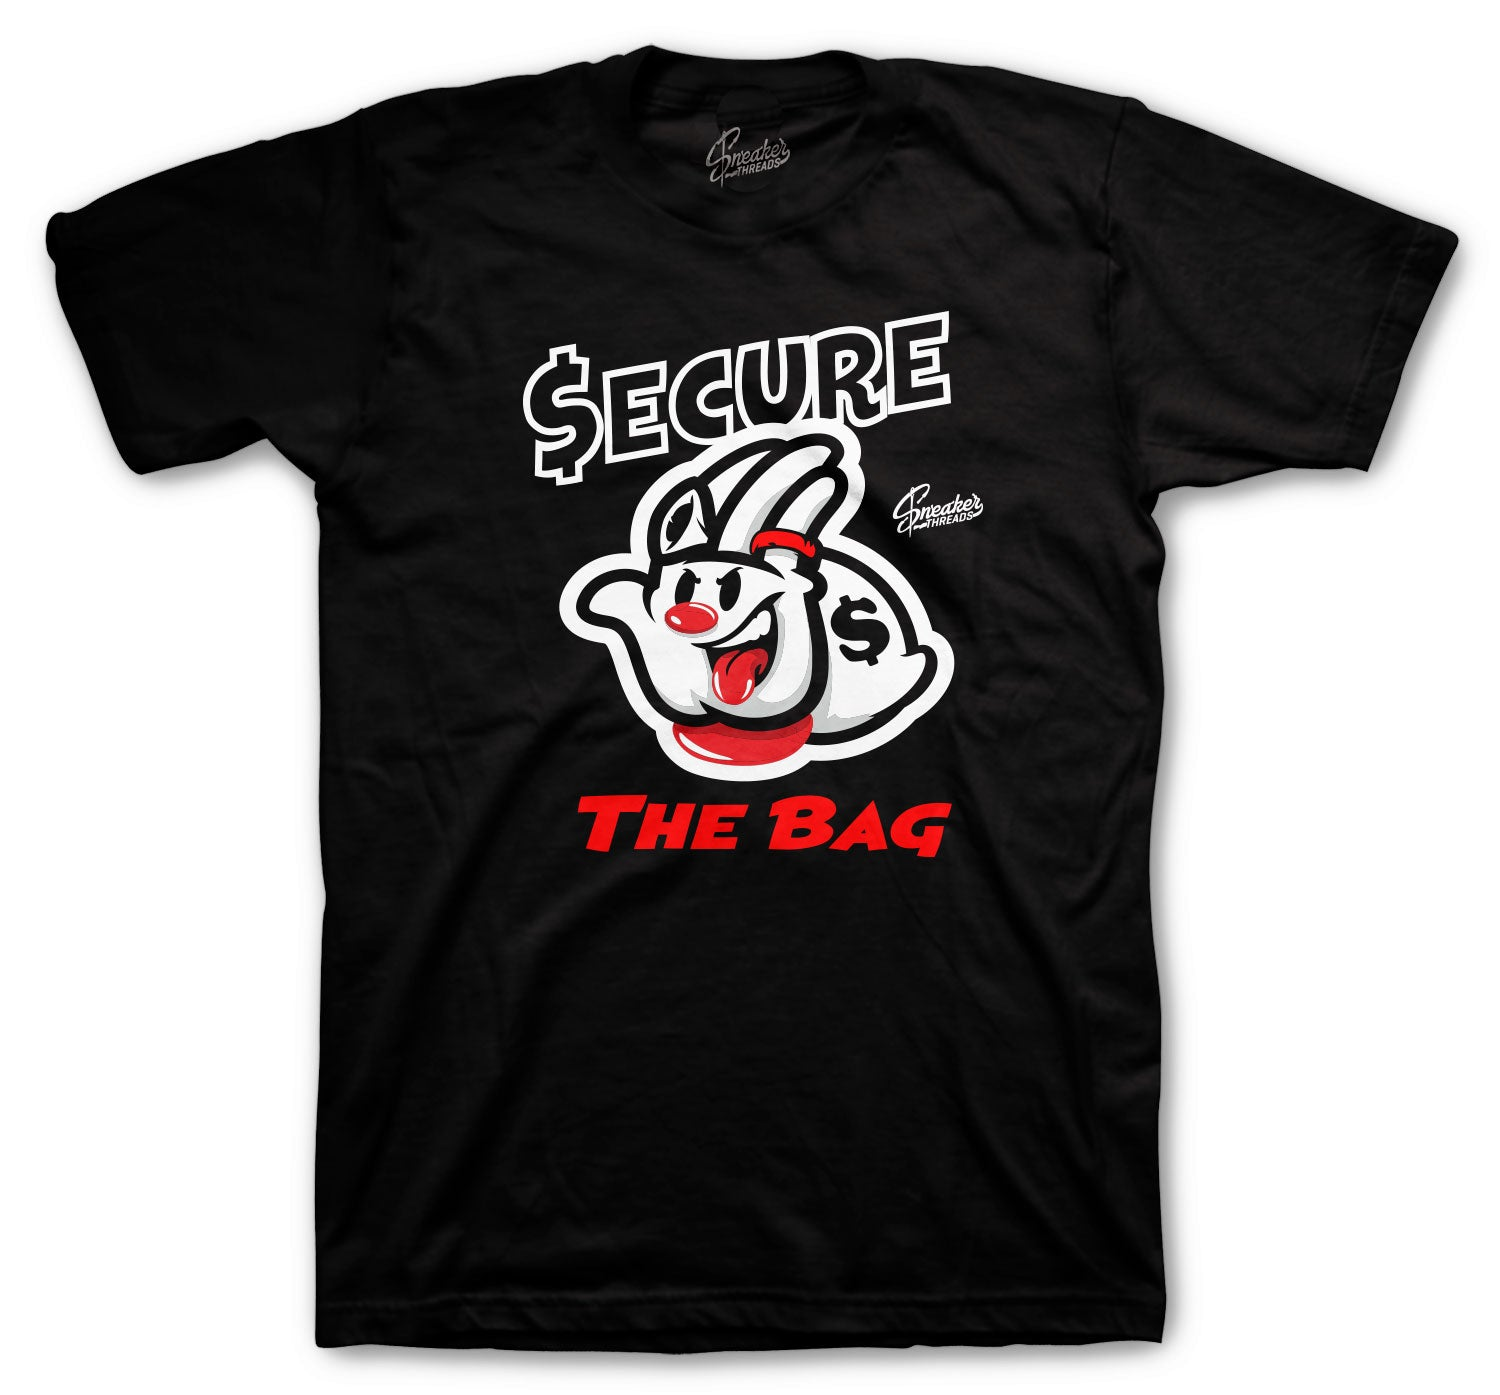 Jordan 13 Reverse Got Game Secure Bag Shirt